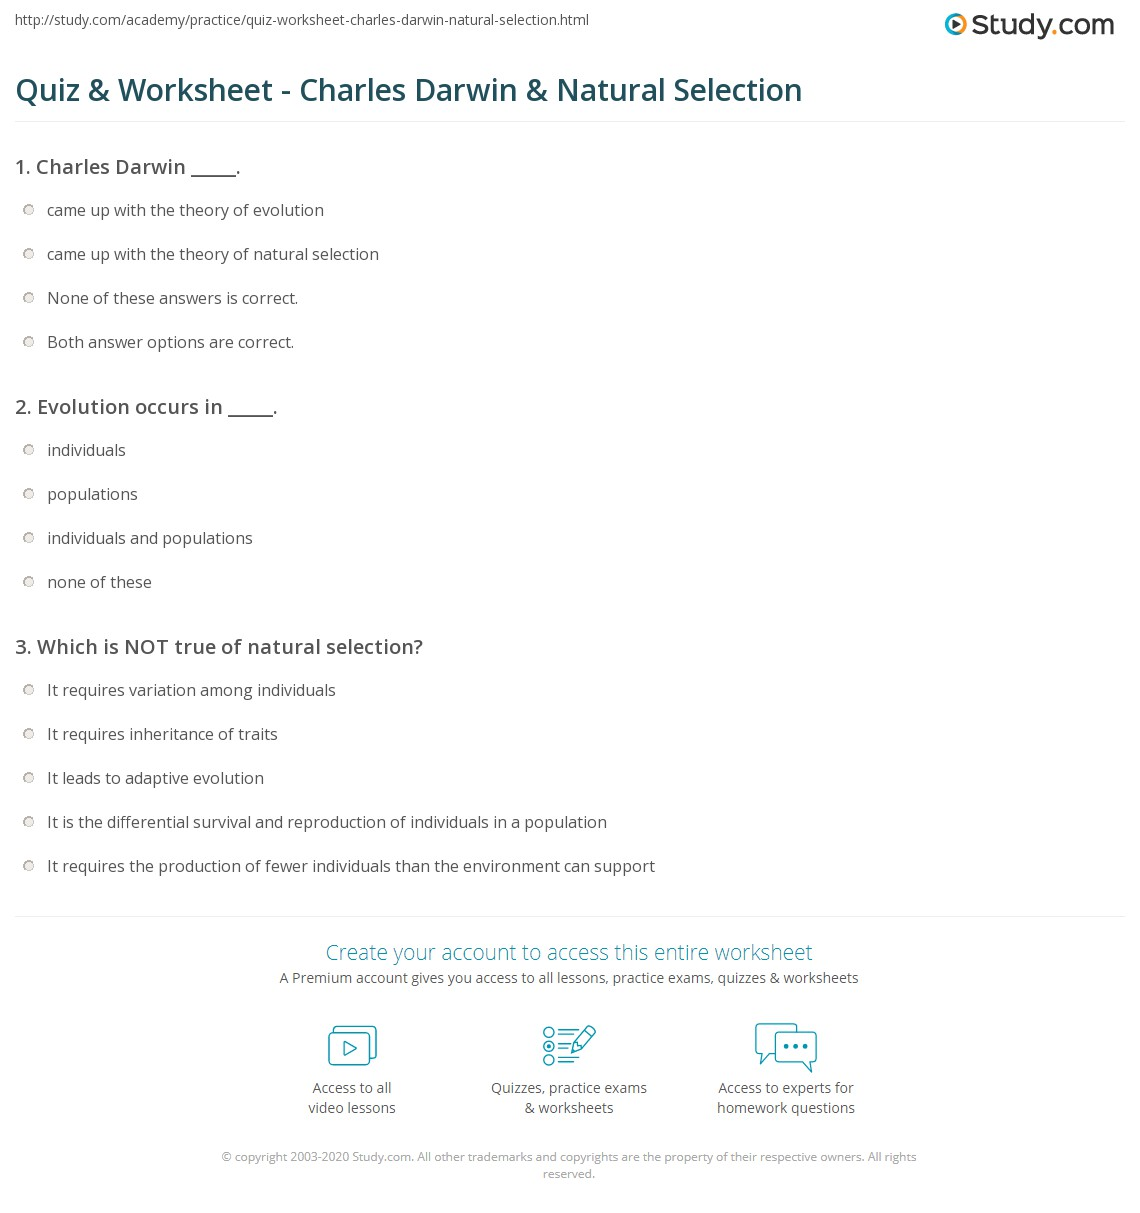 quiz worksheet charles darwin natural selection com theory of evolution natural selection worksheet